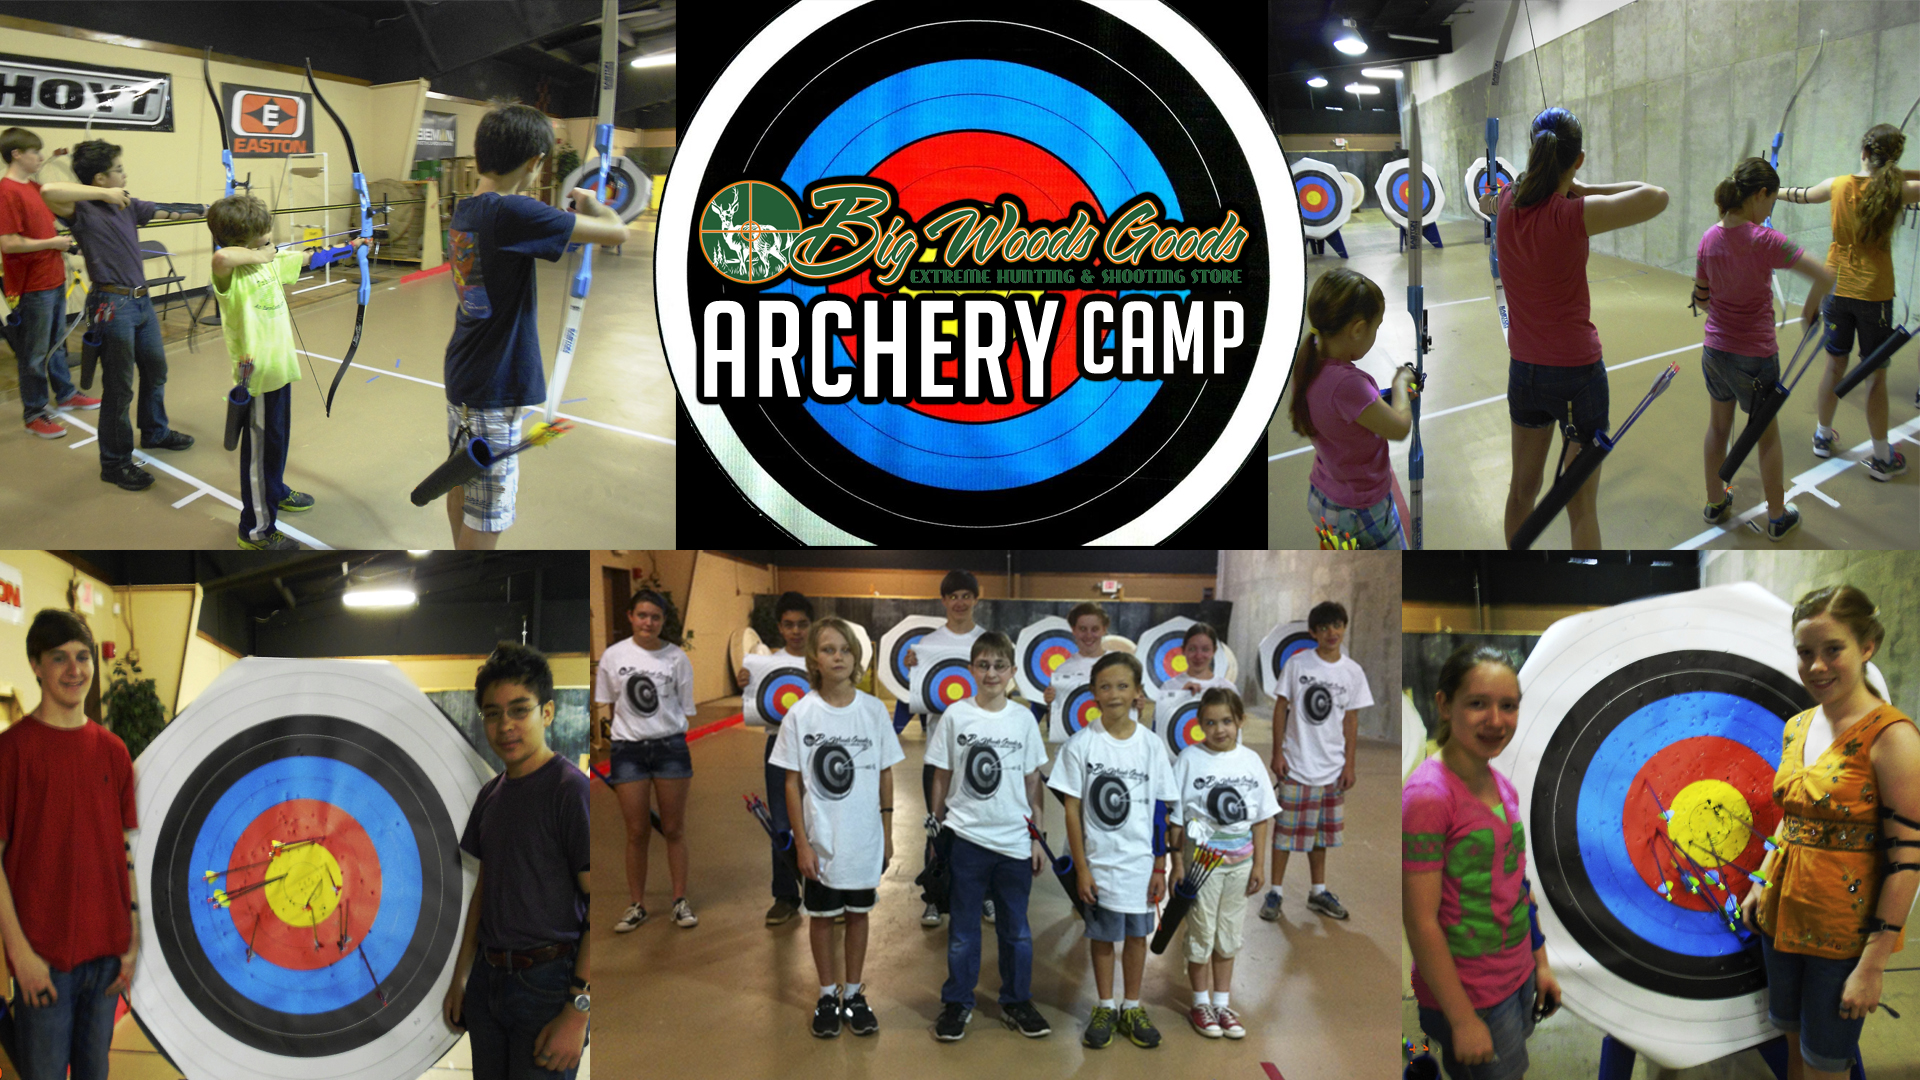 2017 Archery Camp at Big Woods Goods